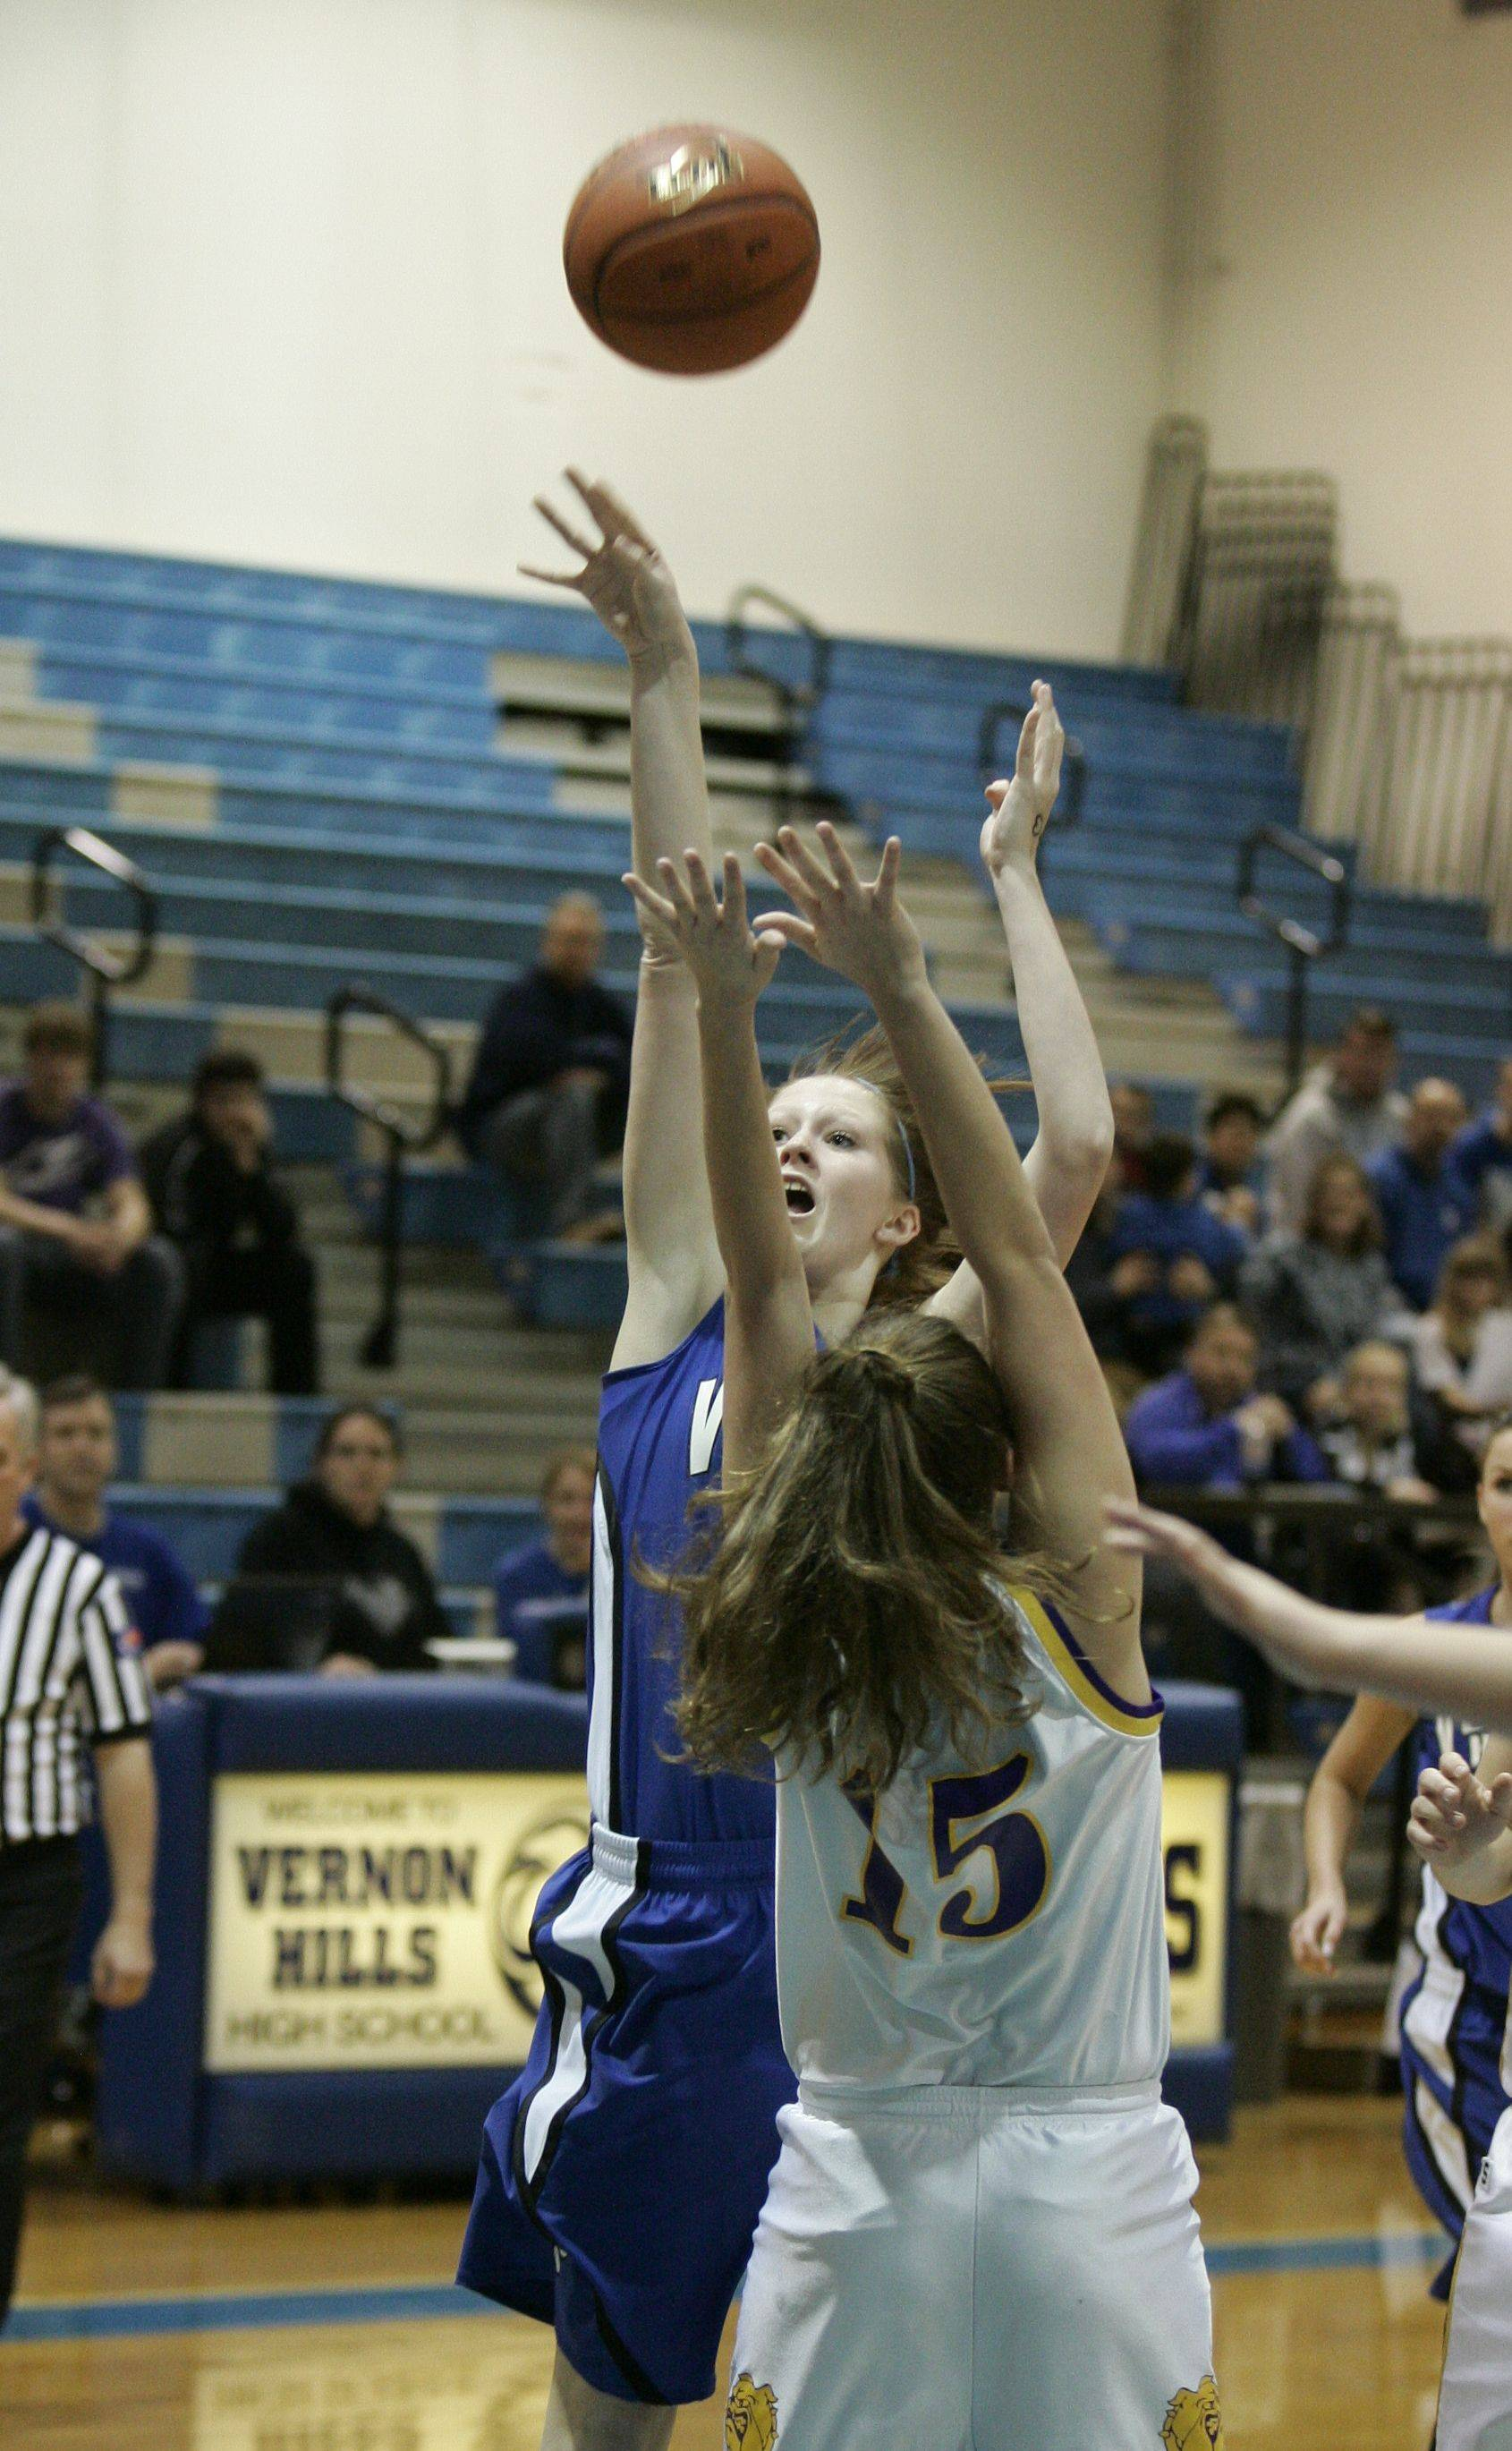 Images from the Wauconda at Vernon Hills girls basketball game Thursday, February 17.